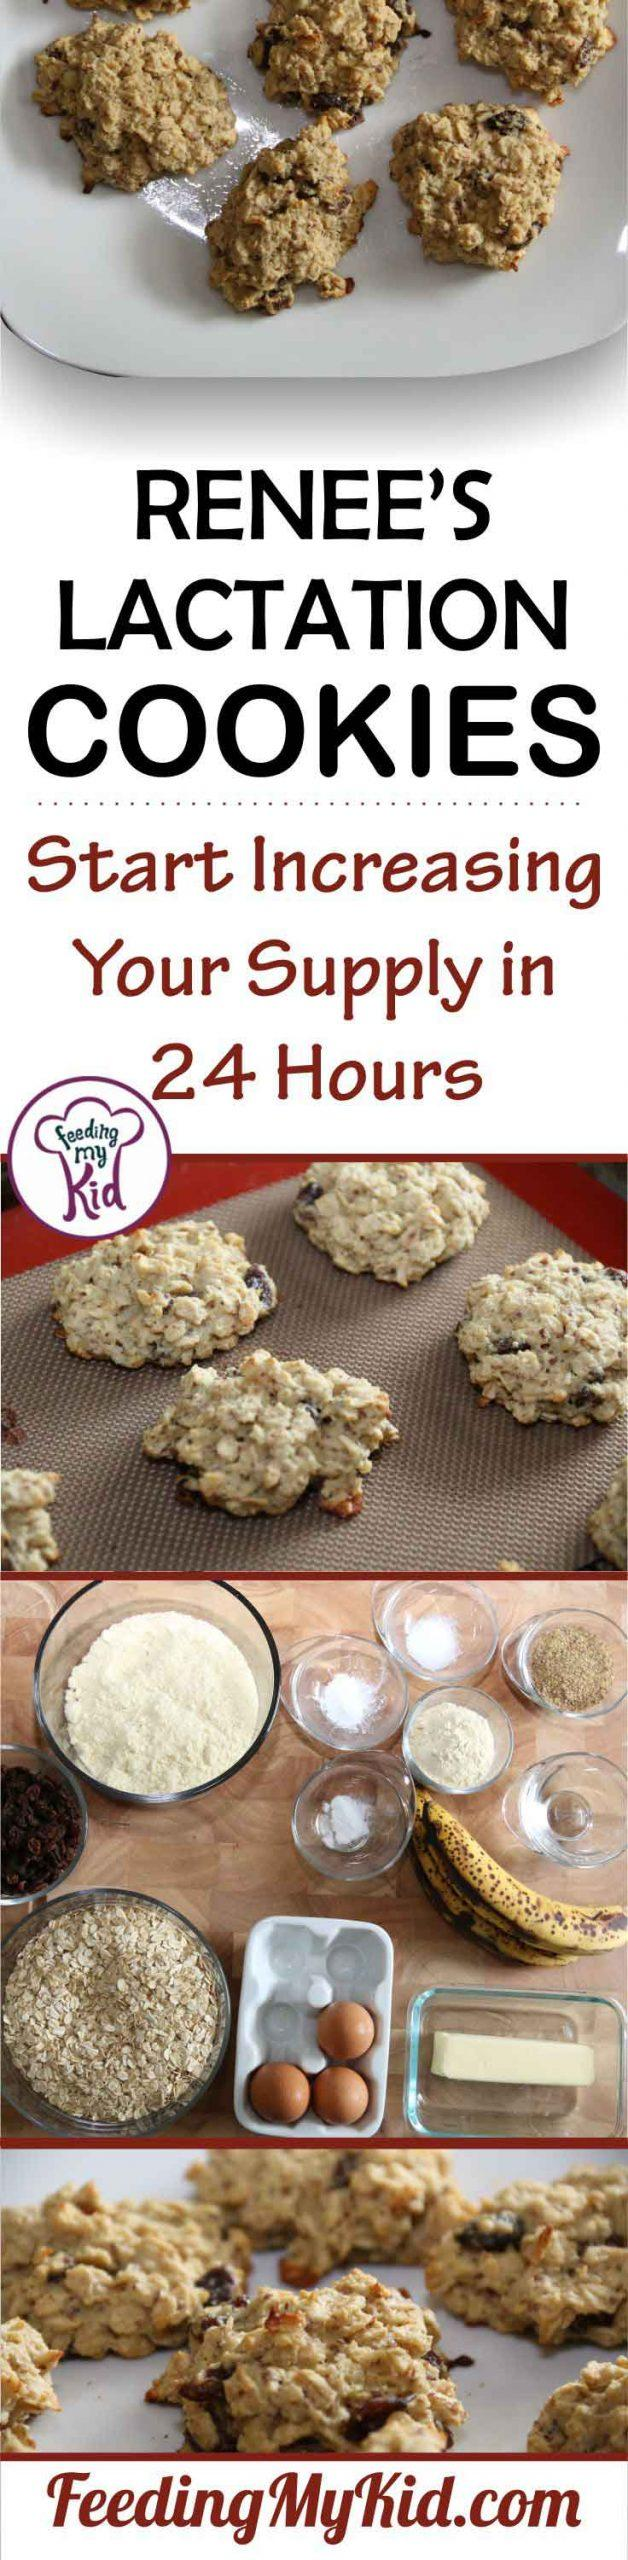 I recently came up with healthier lactation cookies recipe, while not as delicious as their counterparts, they are a lot healthier for you and your baby!